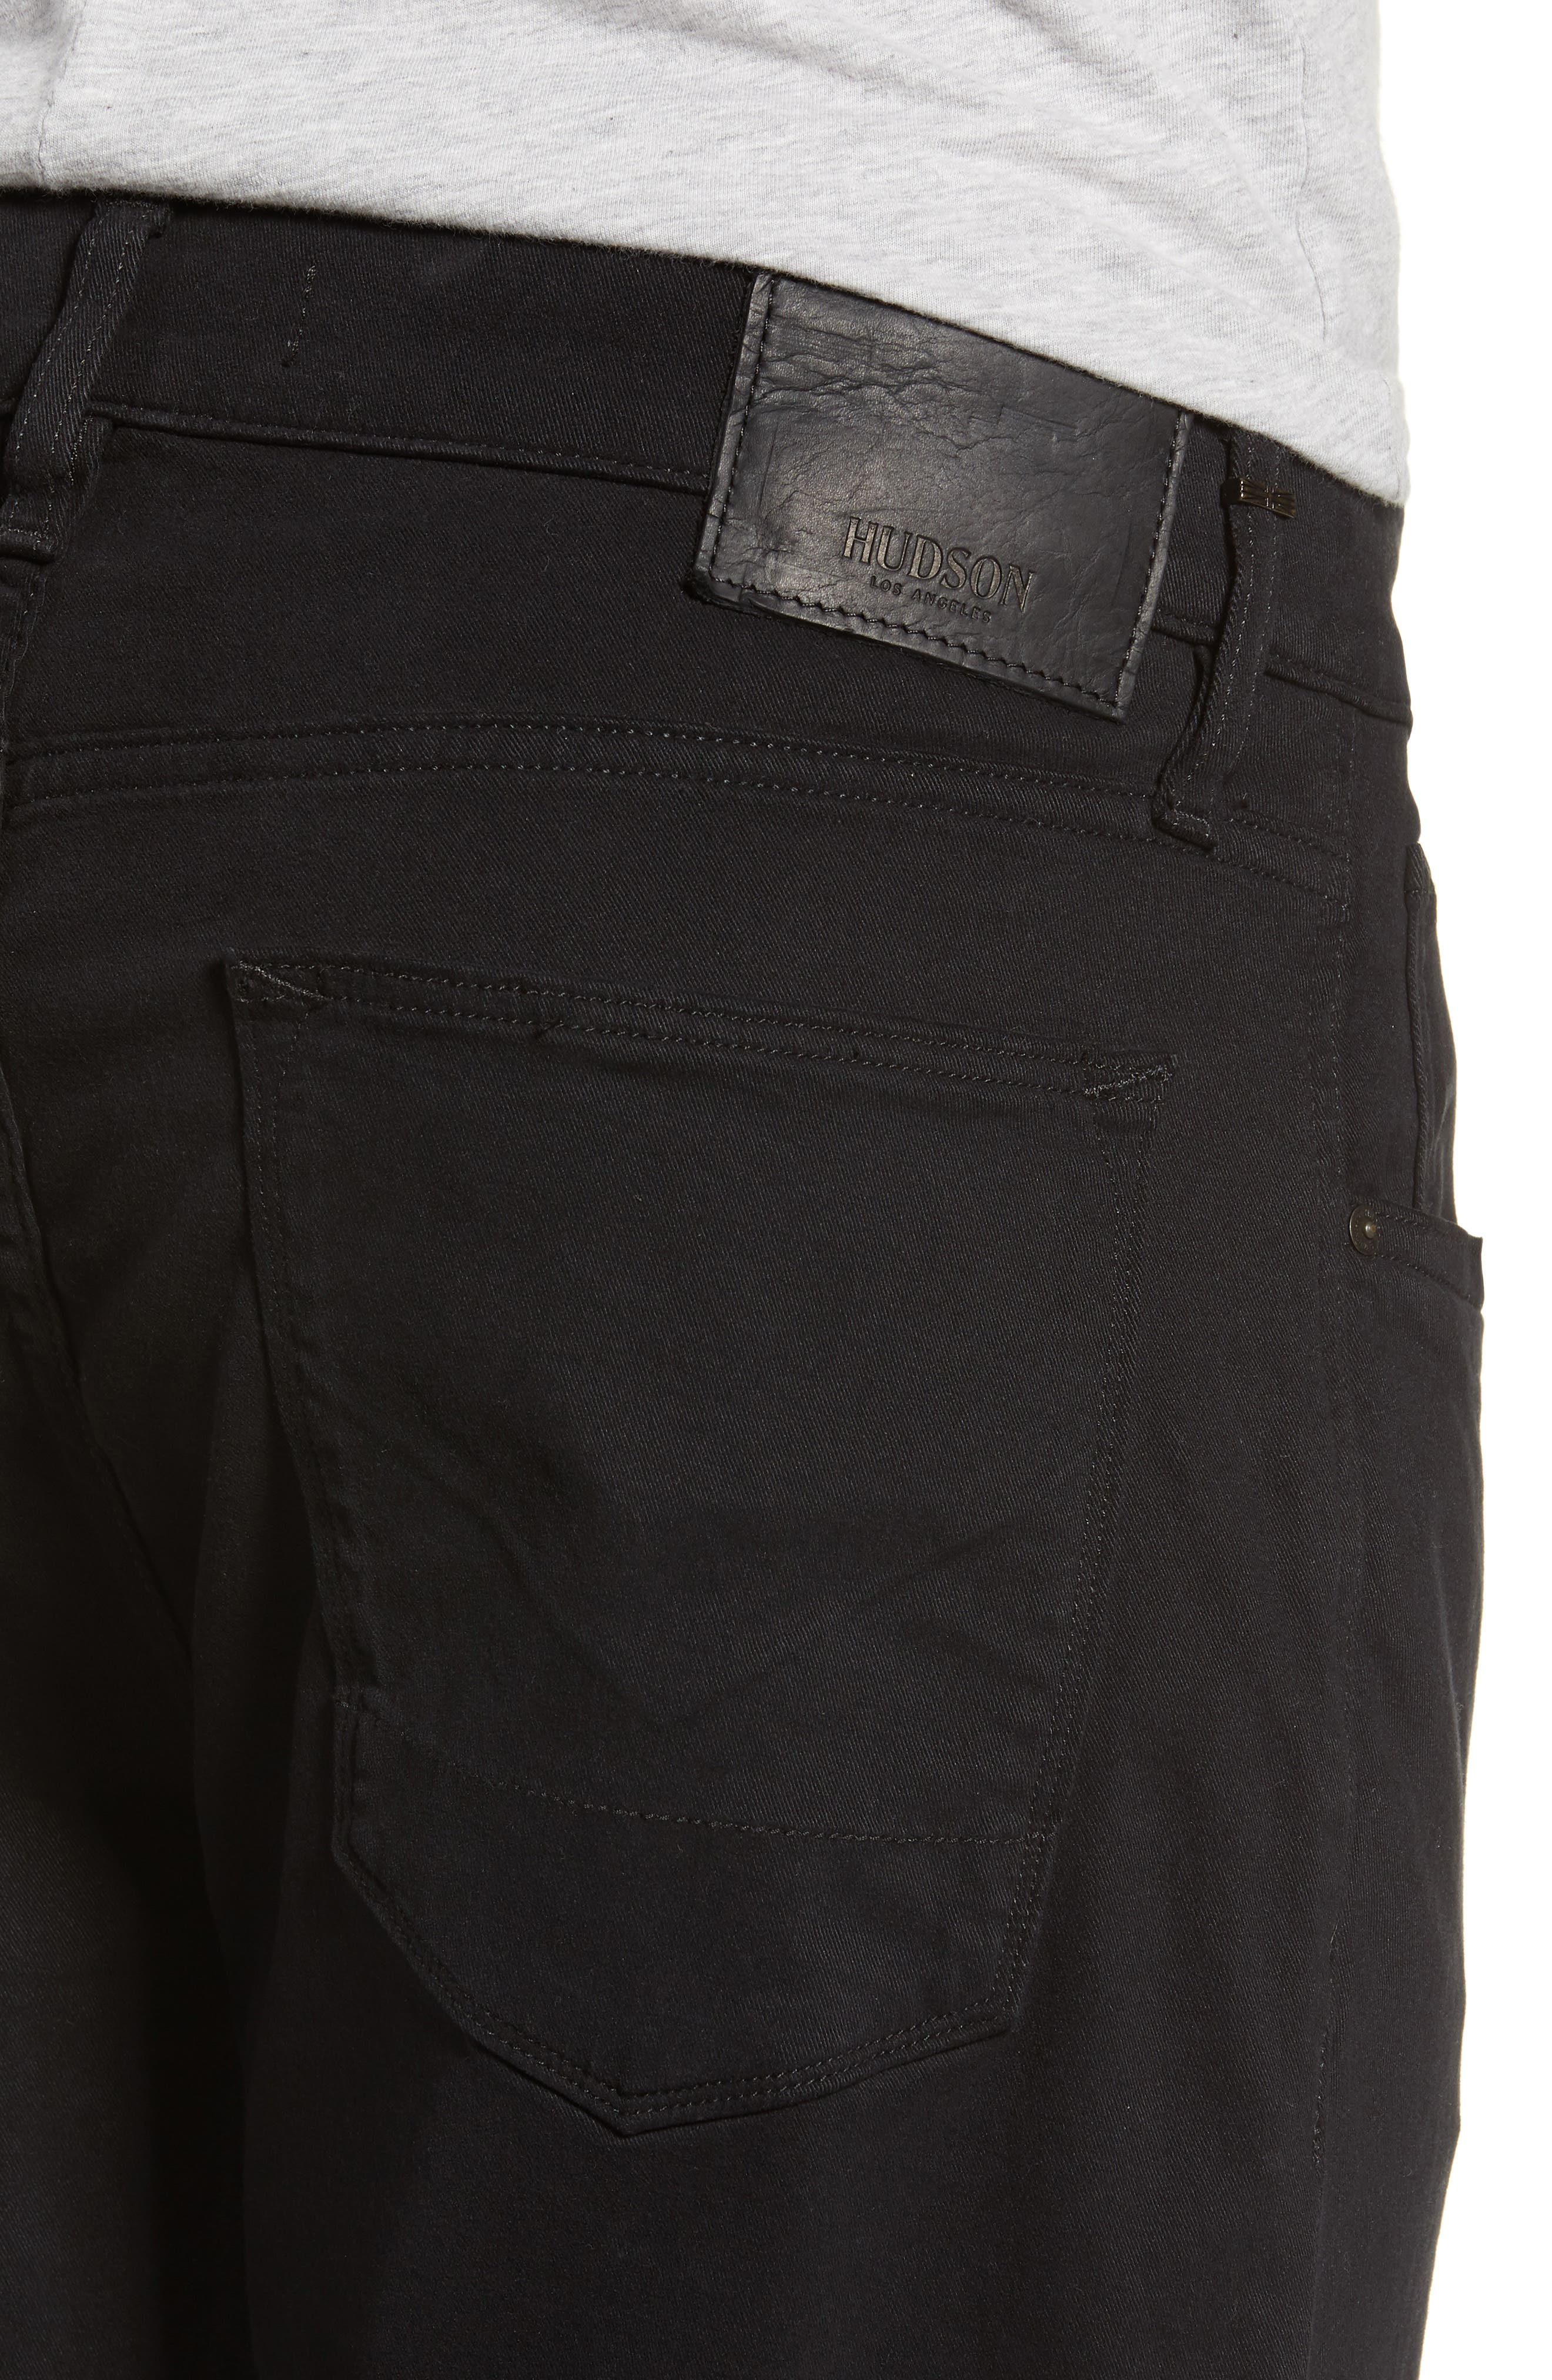 HUDSON JEANS, Blake Slim Fit Jeans, Alternate thumbnail 4, color, BLACK